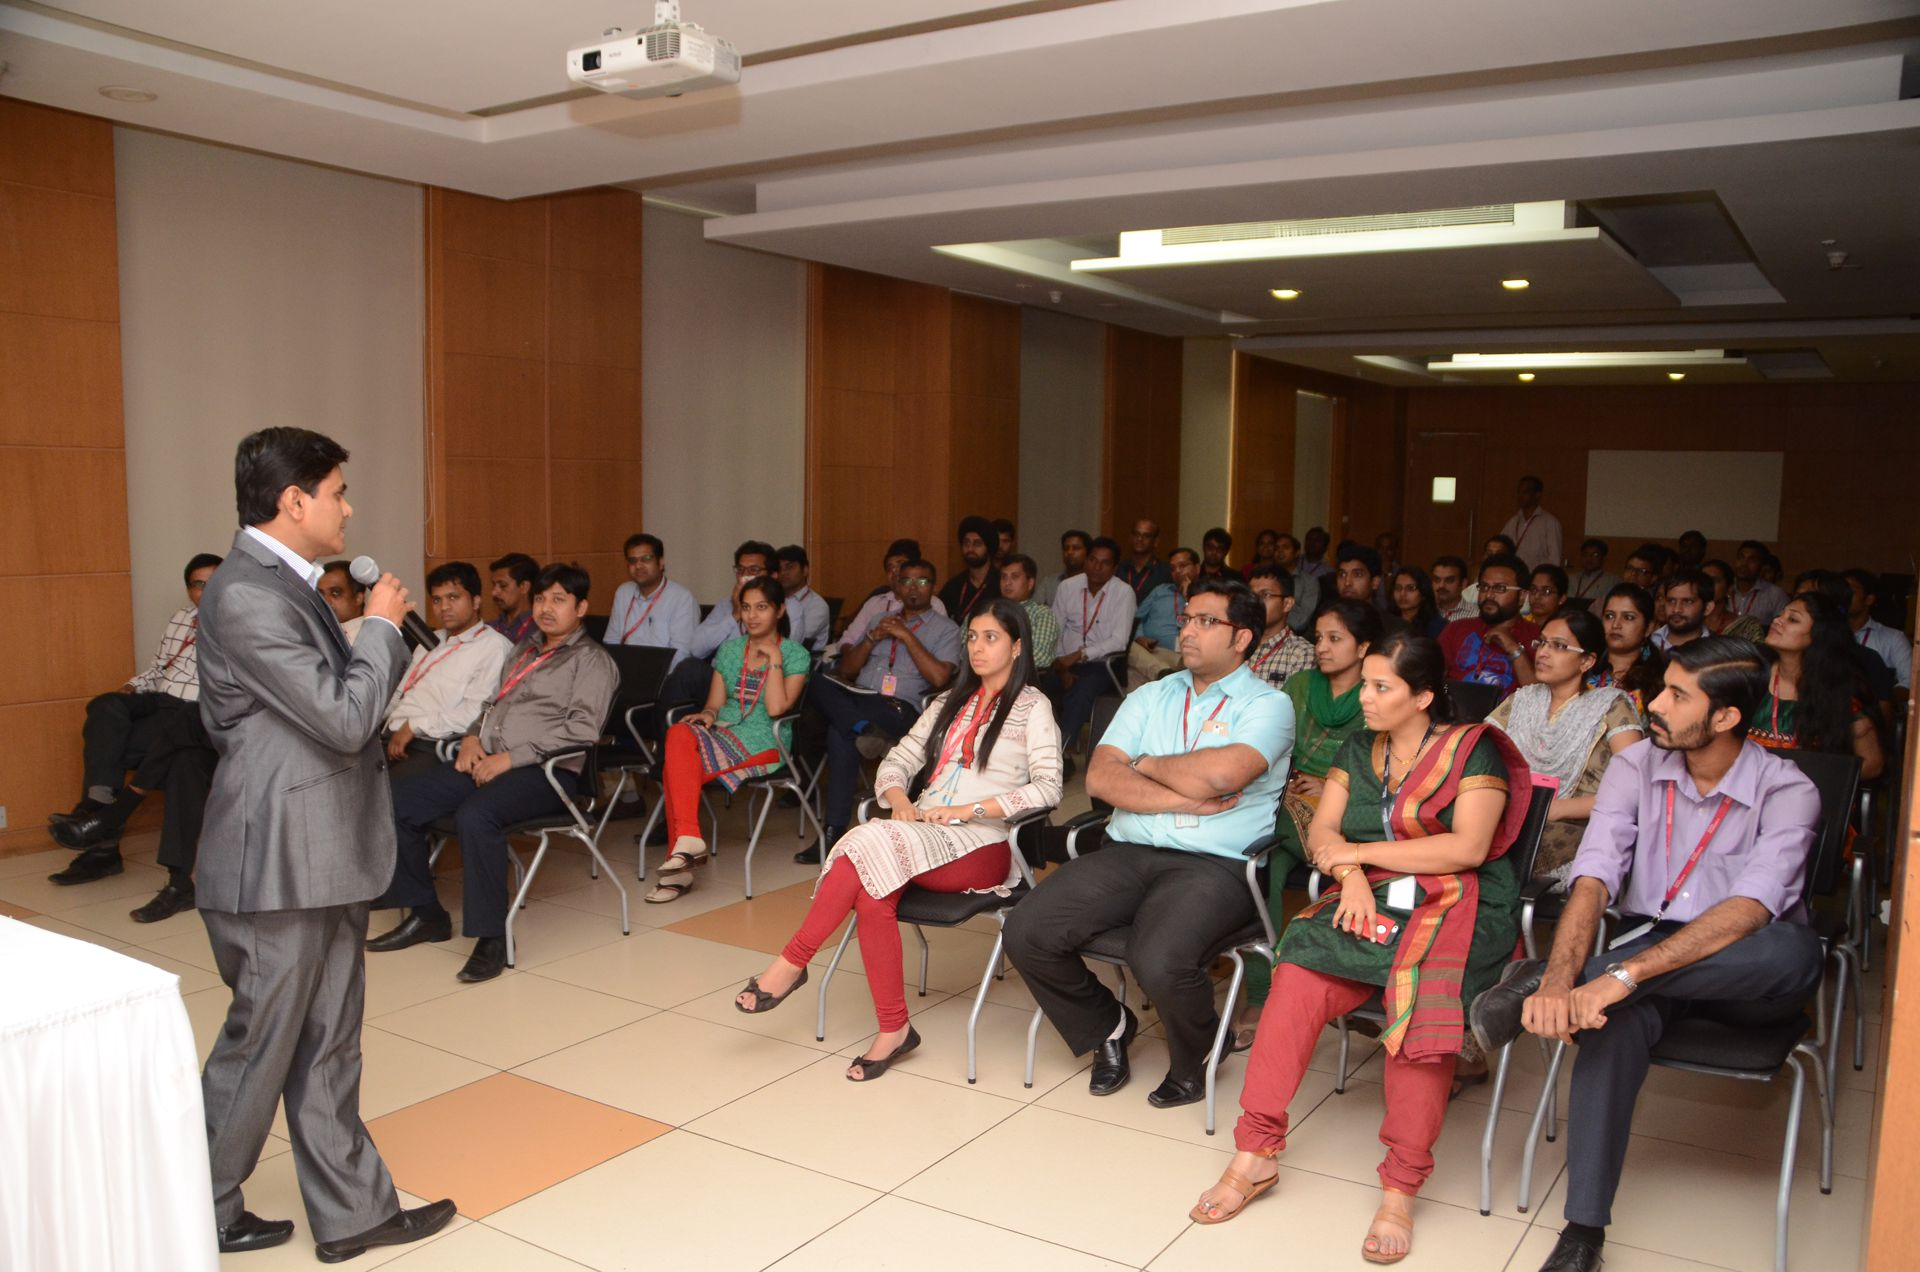 Sandip Arsude Graphology Class at Tech Mahindra1